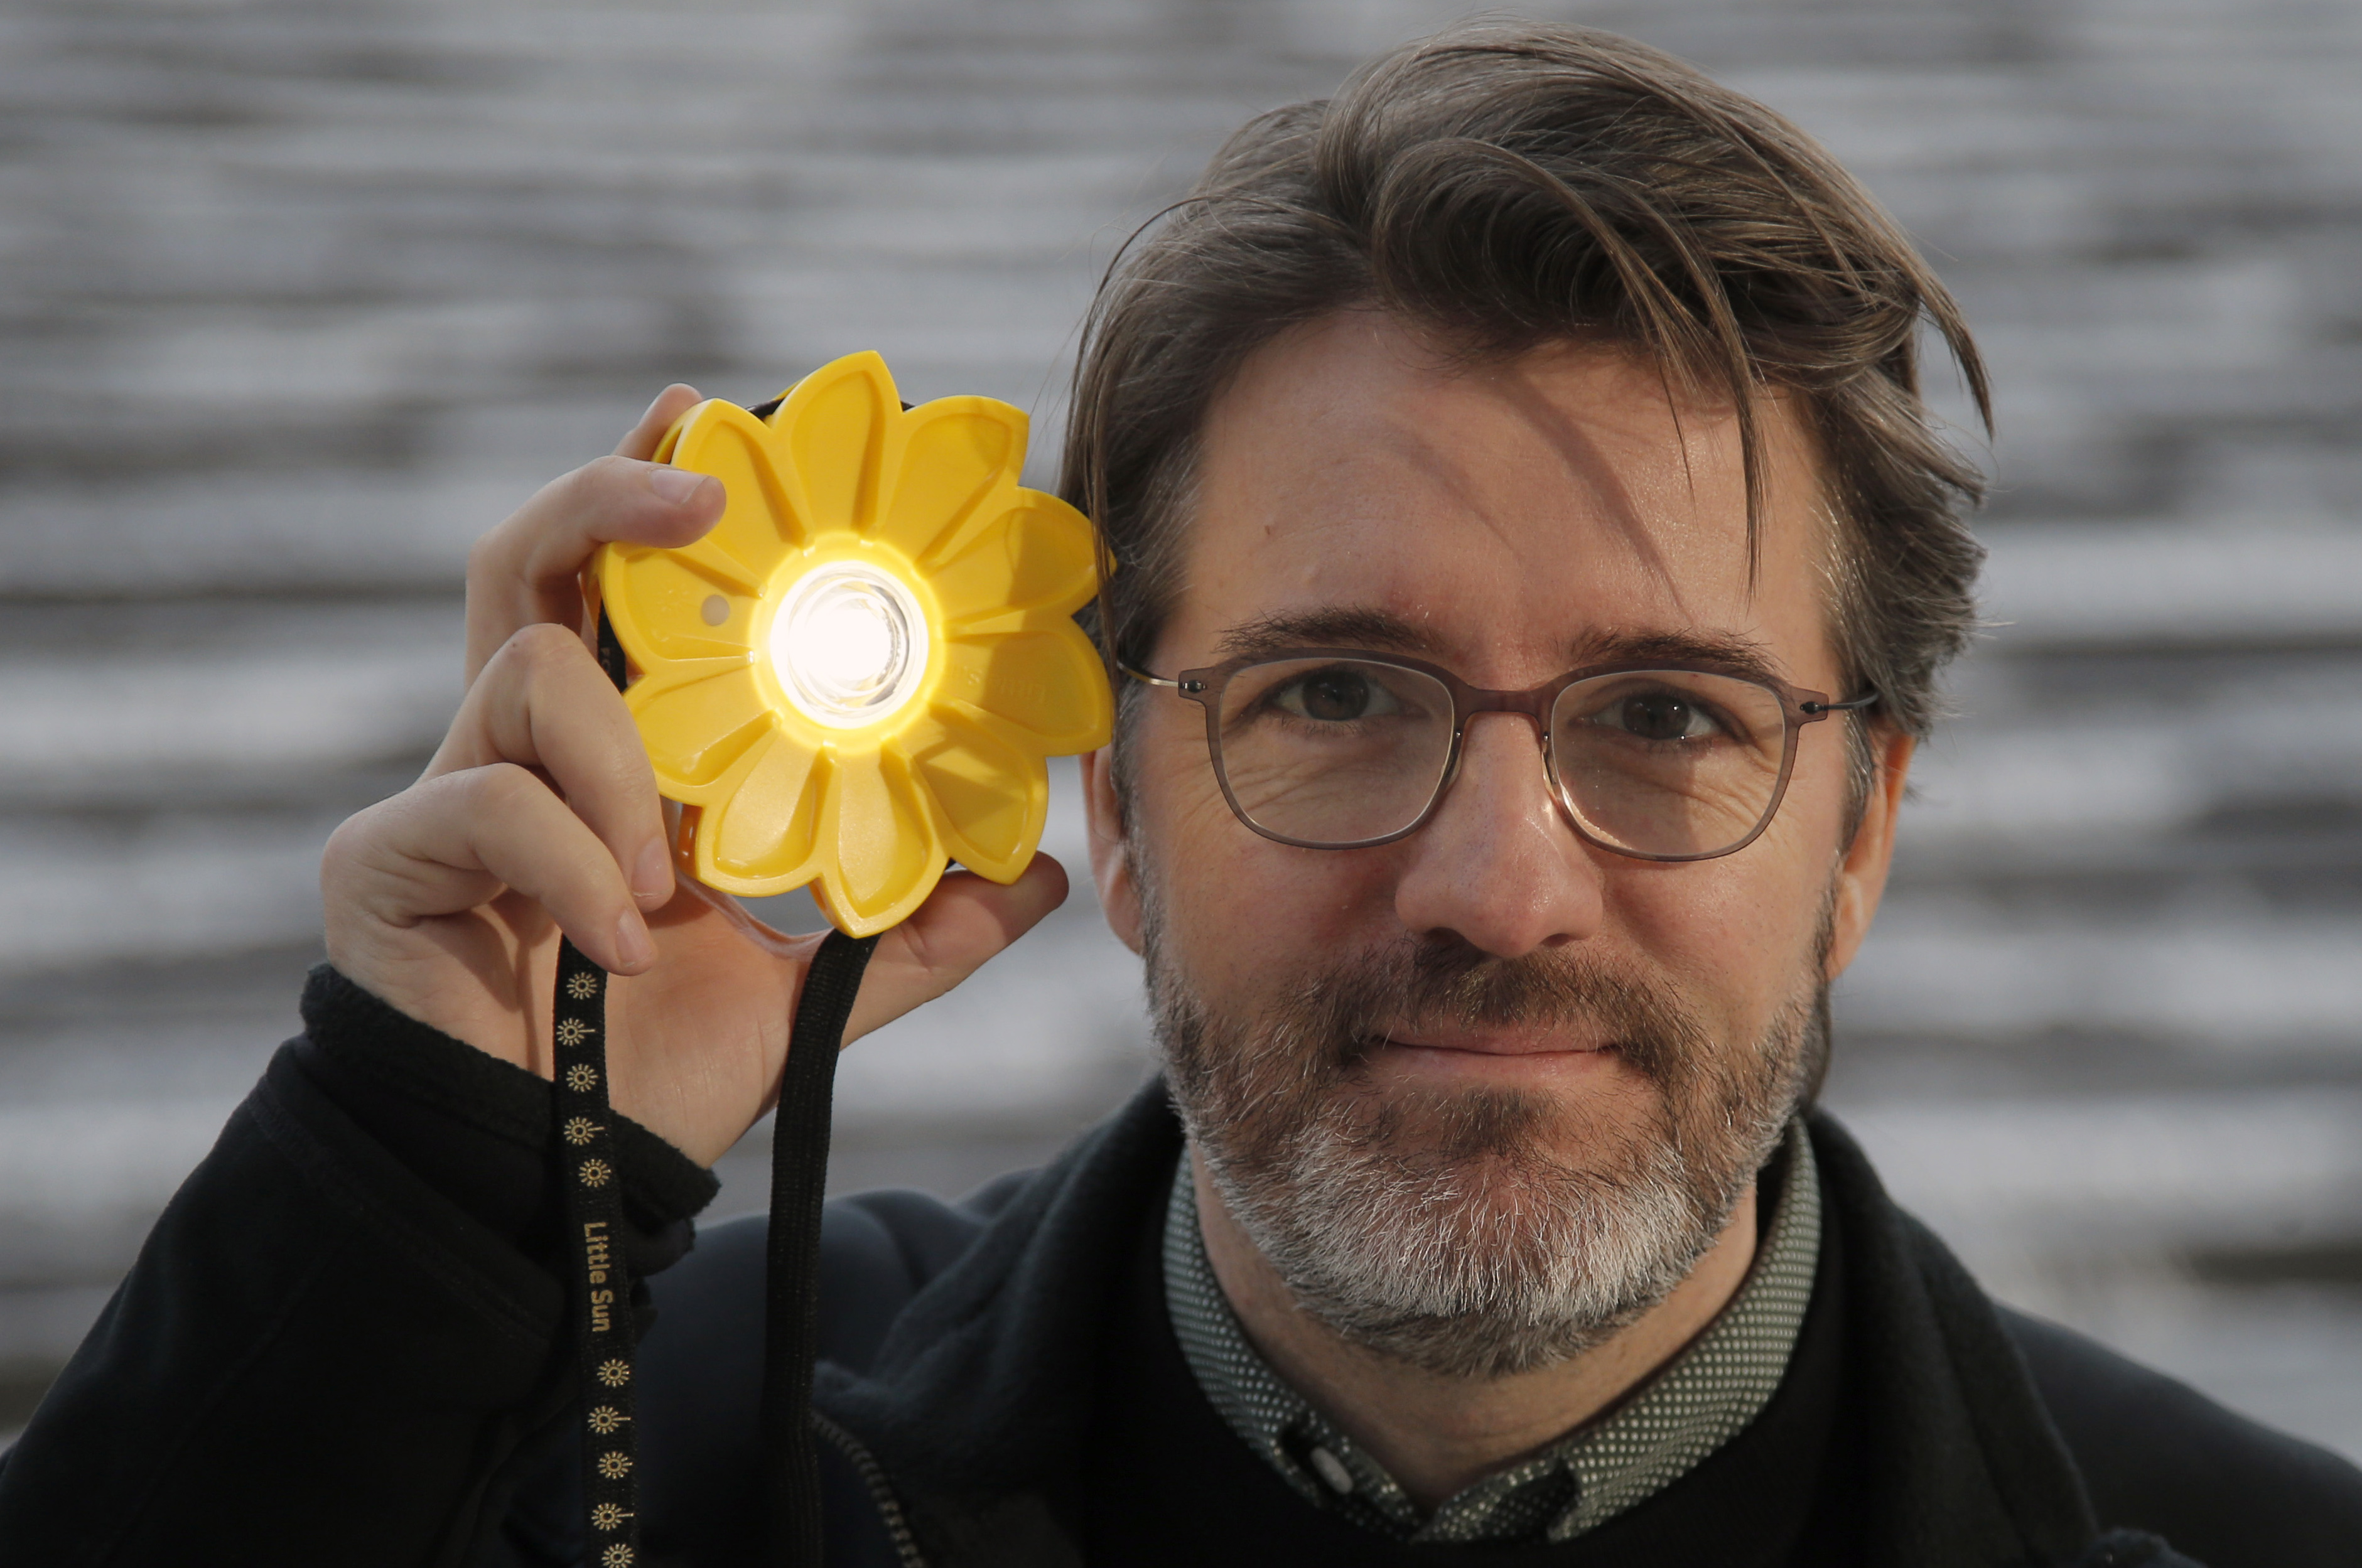 IKEA And Olafur Eliasson Are Developing Solar-powered